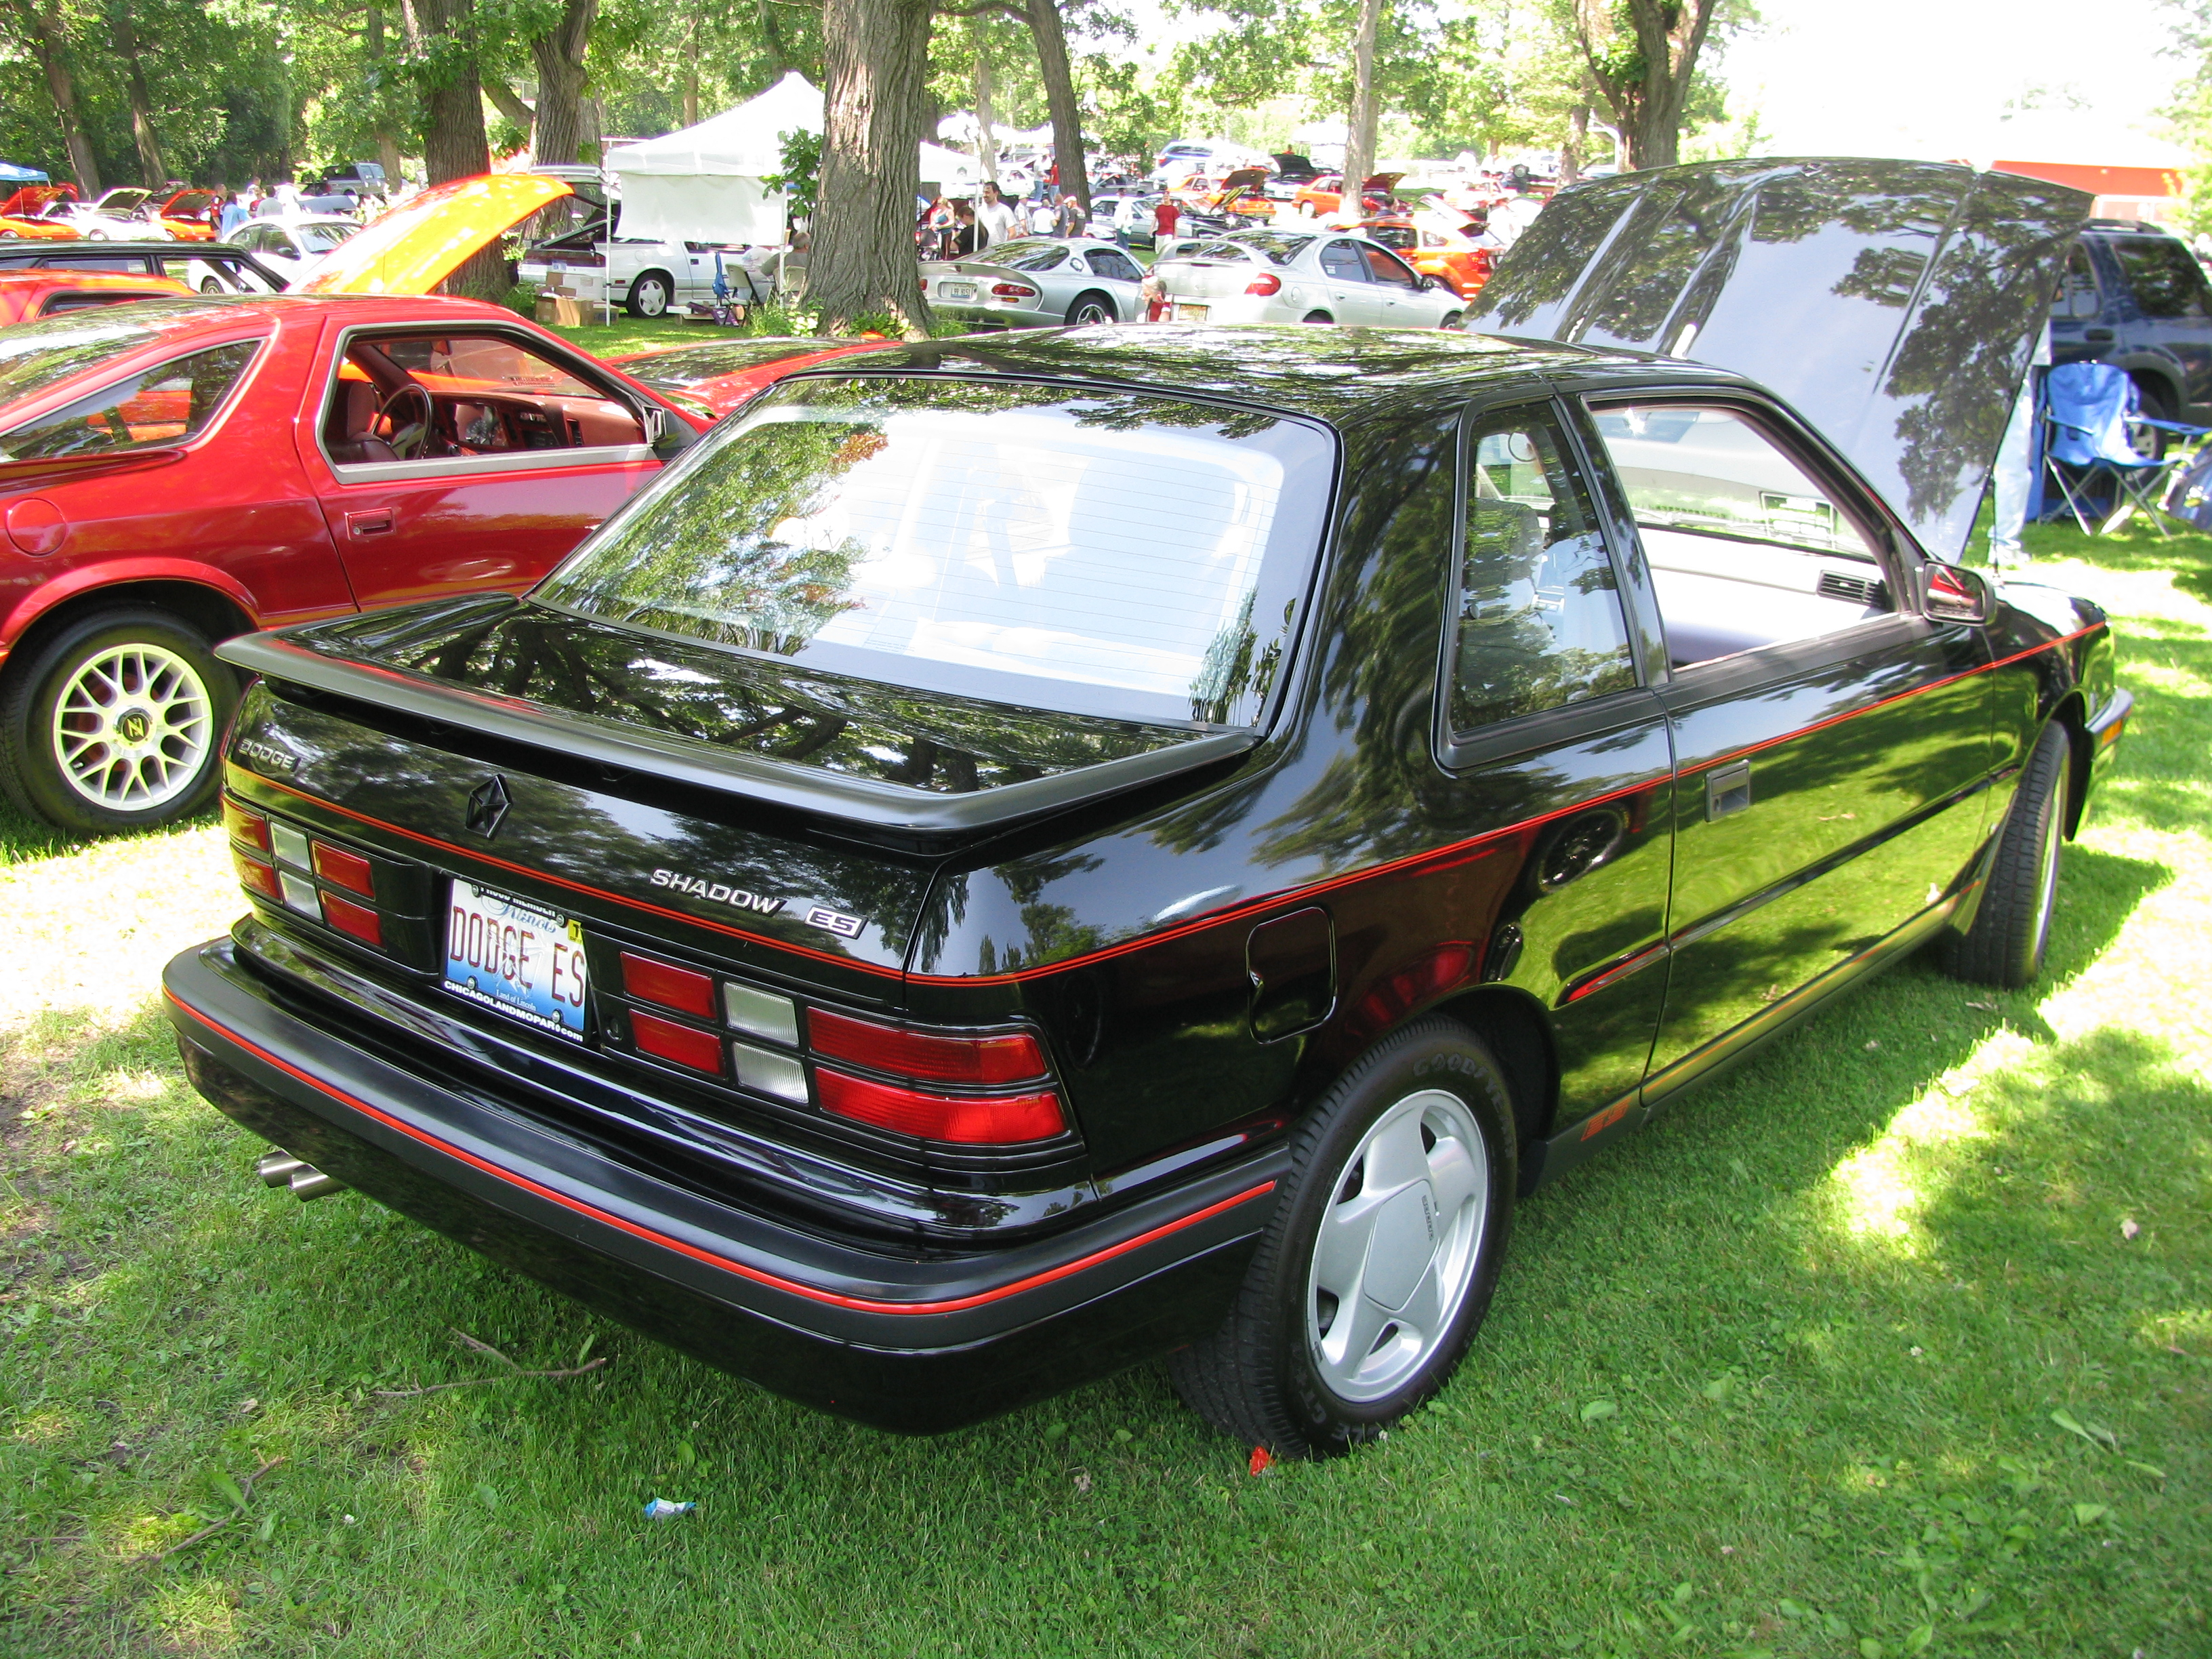 1990 Dodge Shadow #11